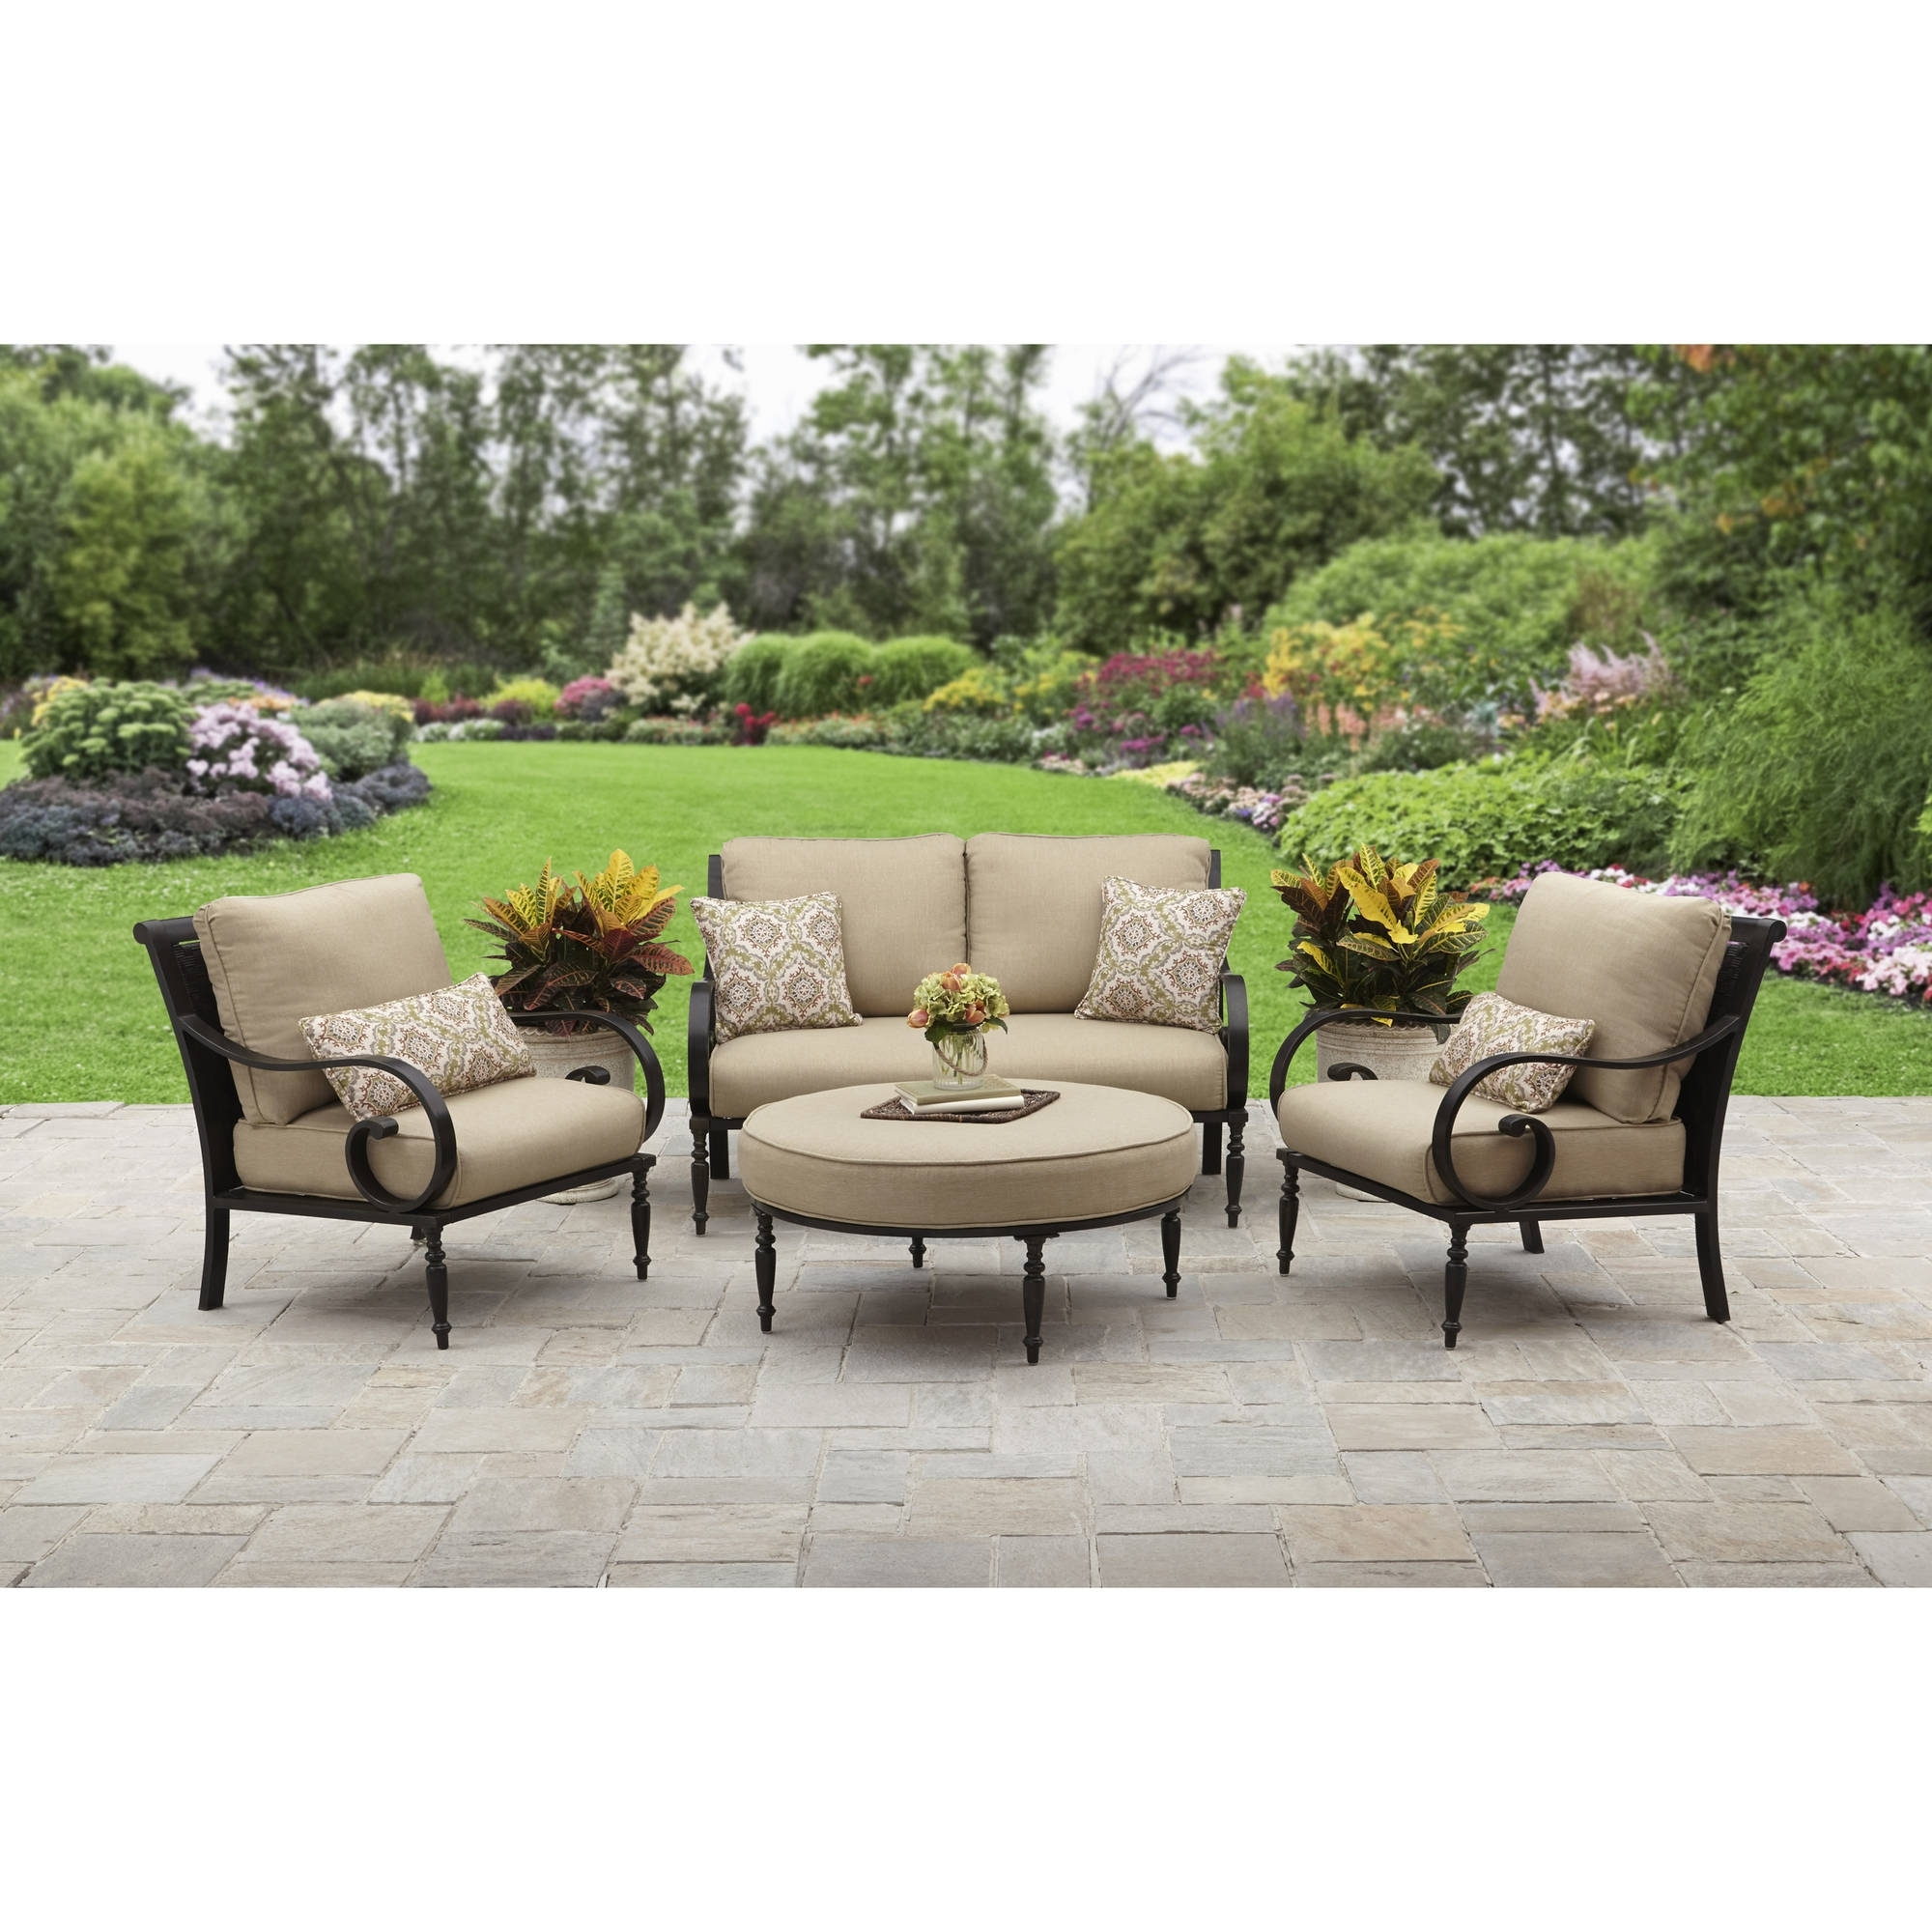 Better Homes And Gardens Englewood Heights Ii Aluminum 4 Piece Pertaining To Well Known Patio Conversation Dining Sets (View 3 of 15)